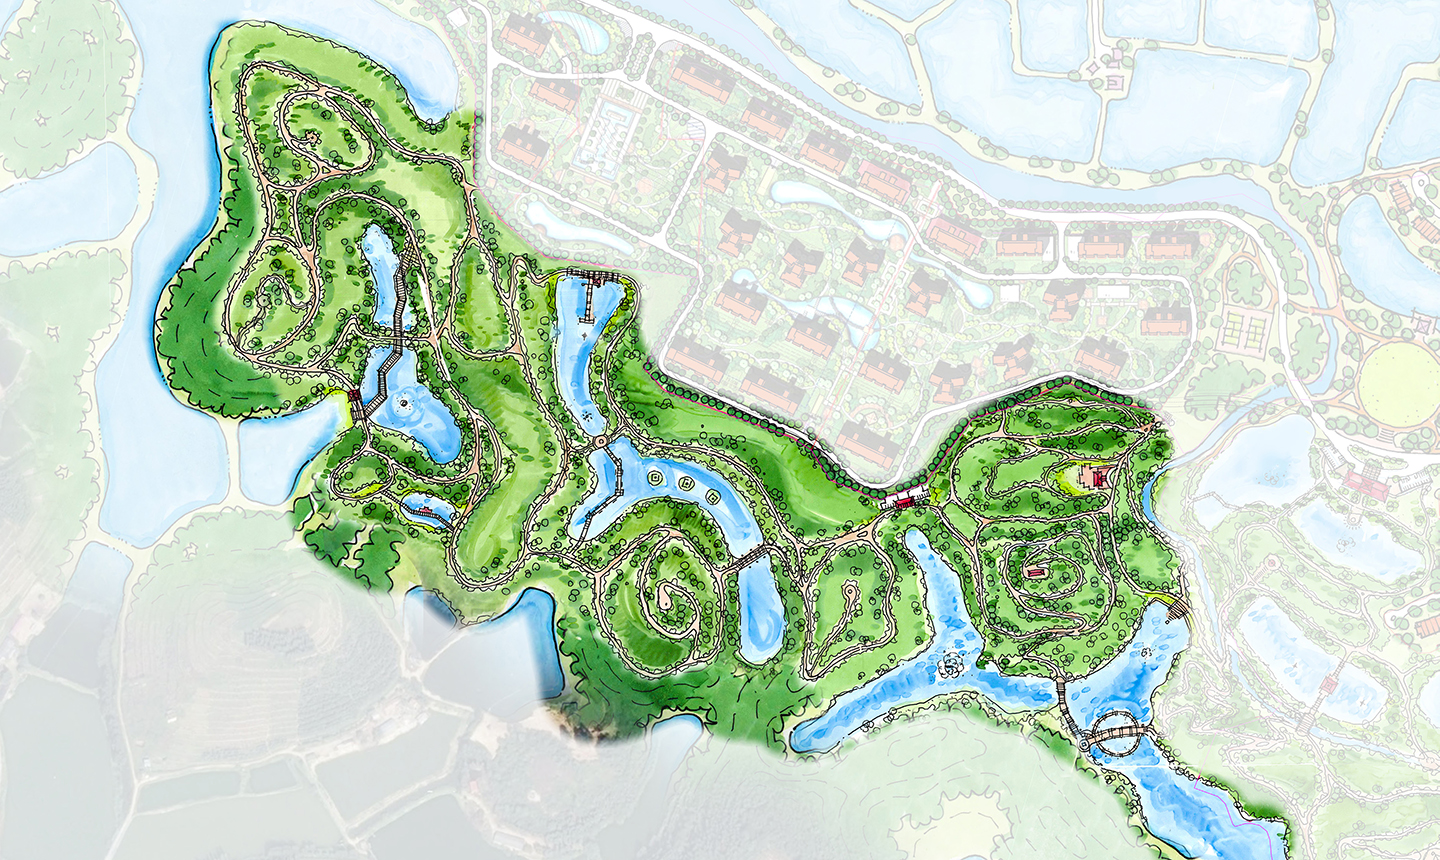 Greenland Zhaoqing_eco park conservation area_EKISTICS